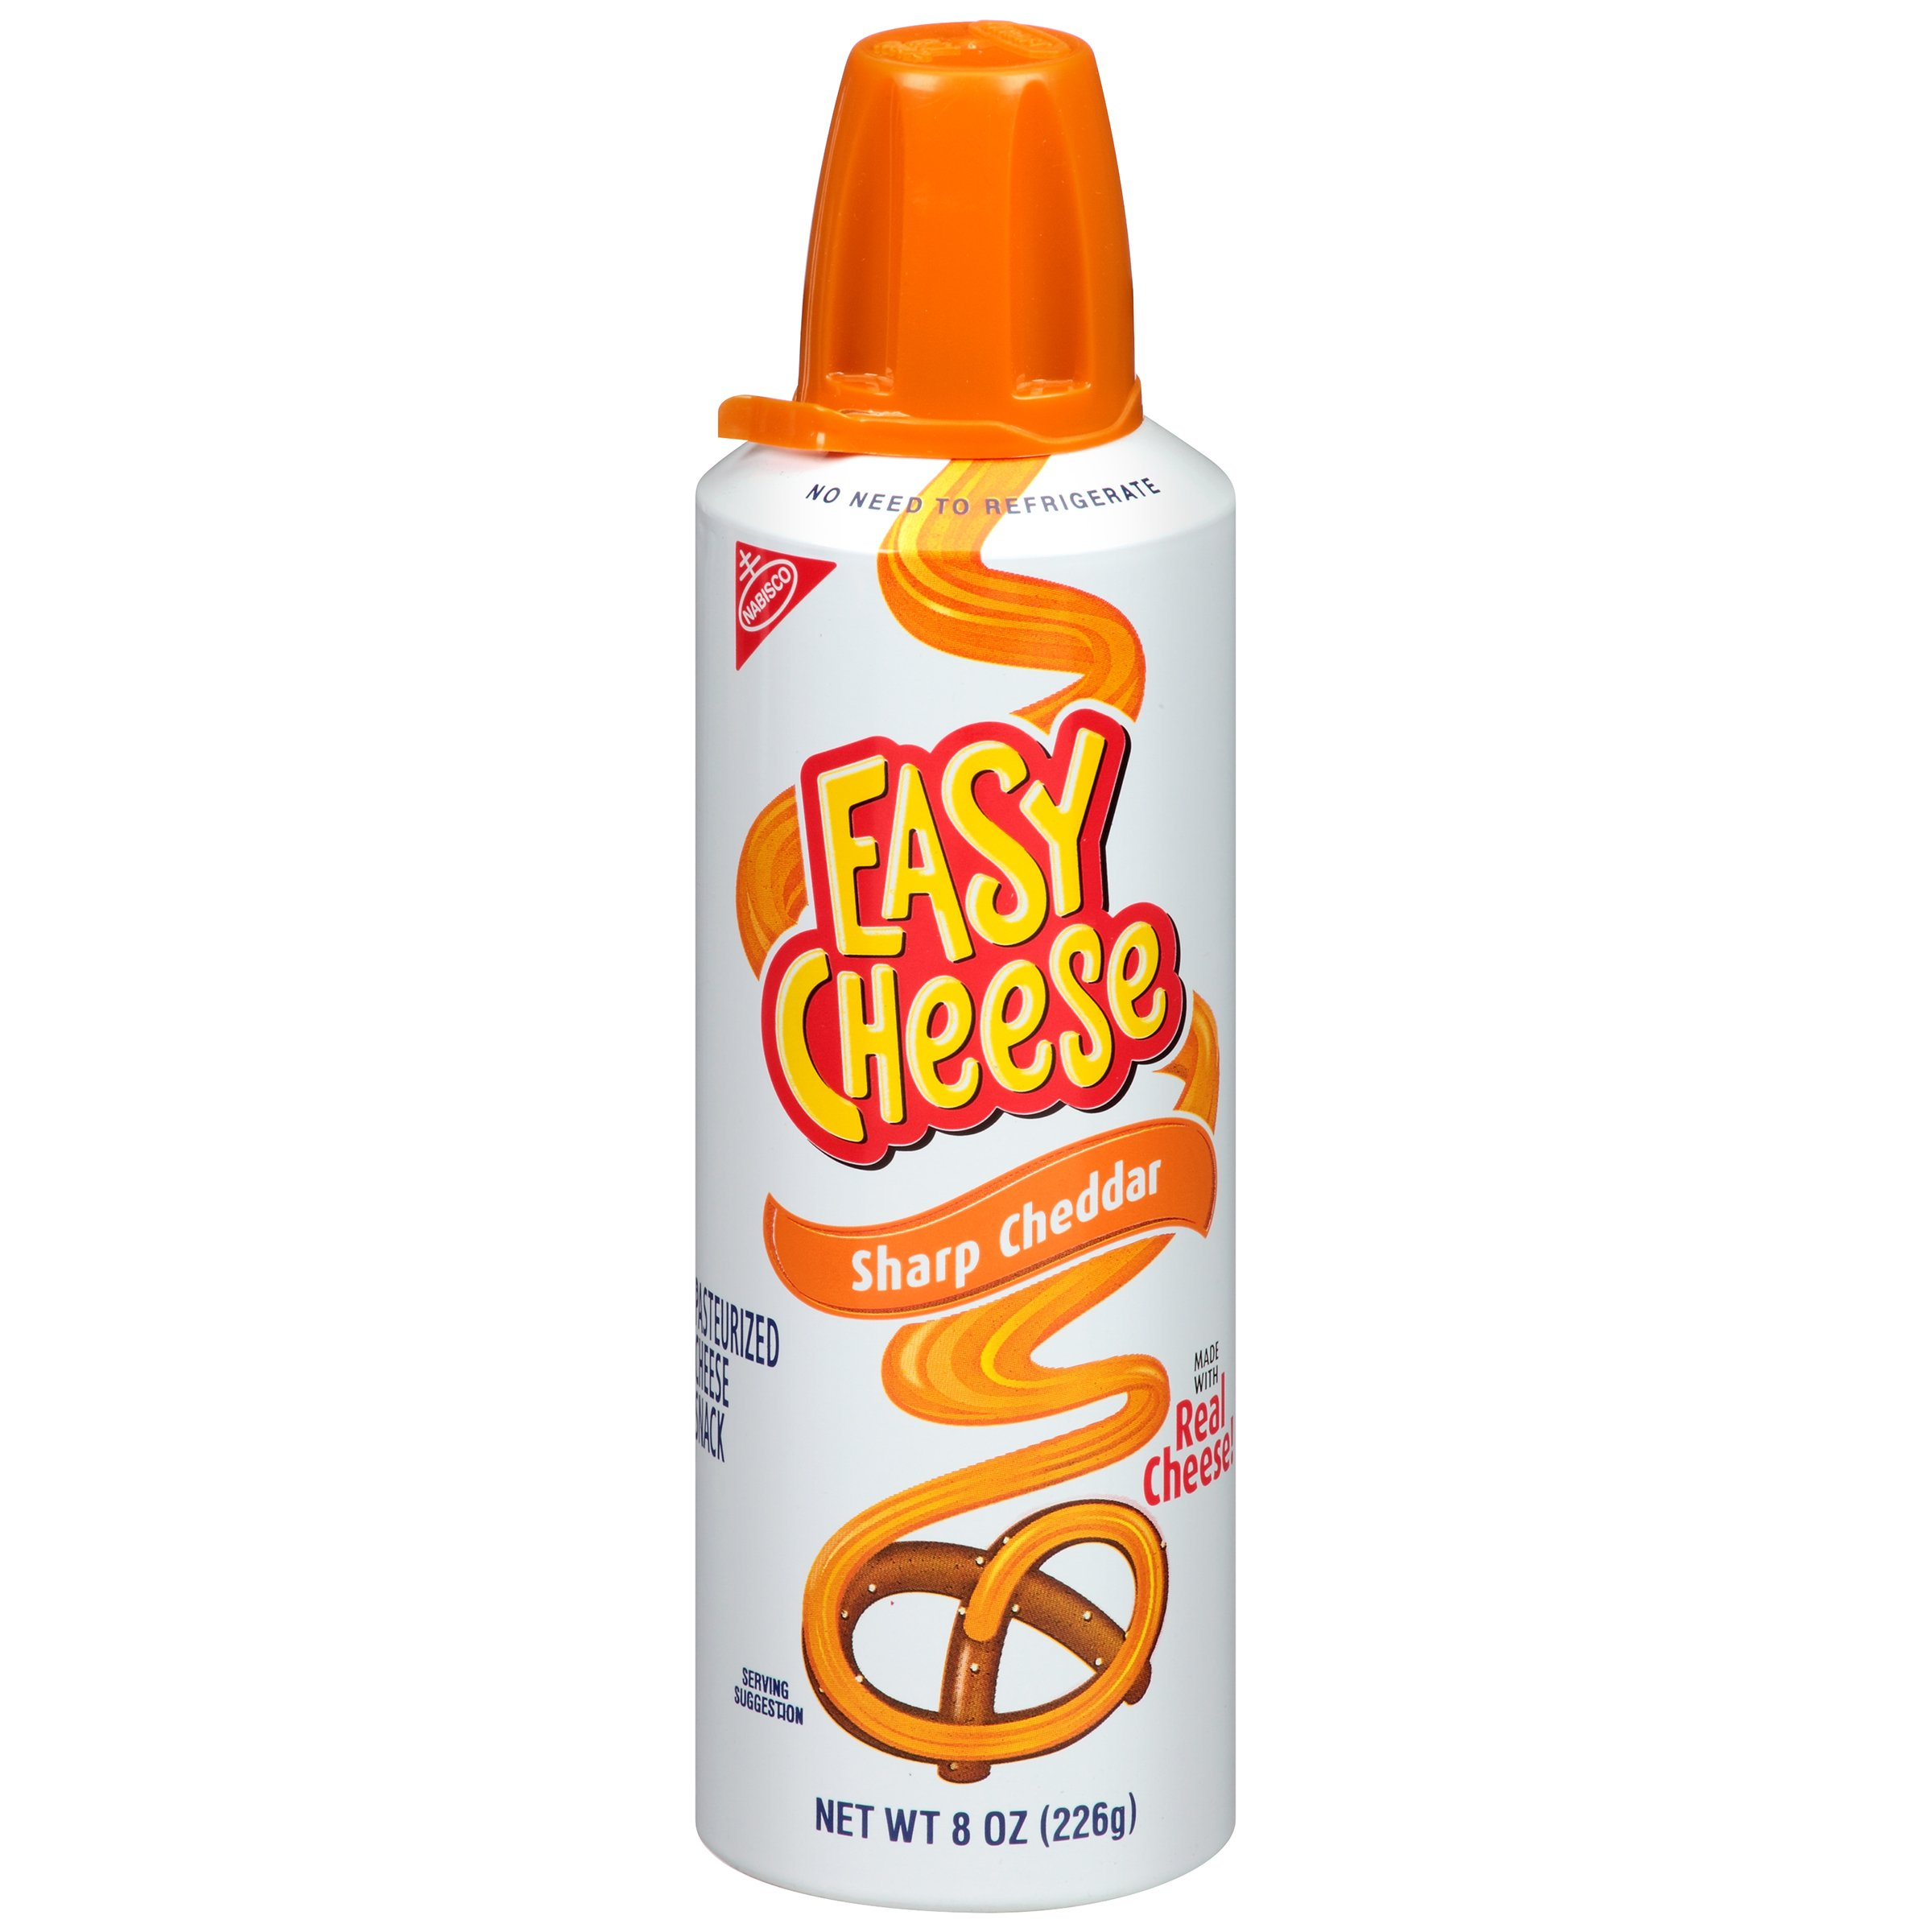 Easy Cheese Sharp Cheddar Cheese Snack, 8 Ounce (Pack of 12)